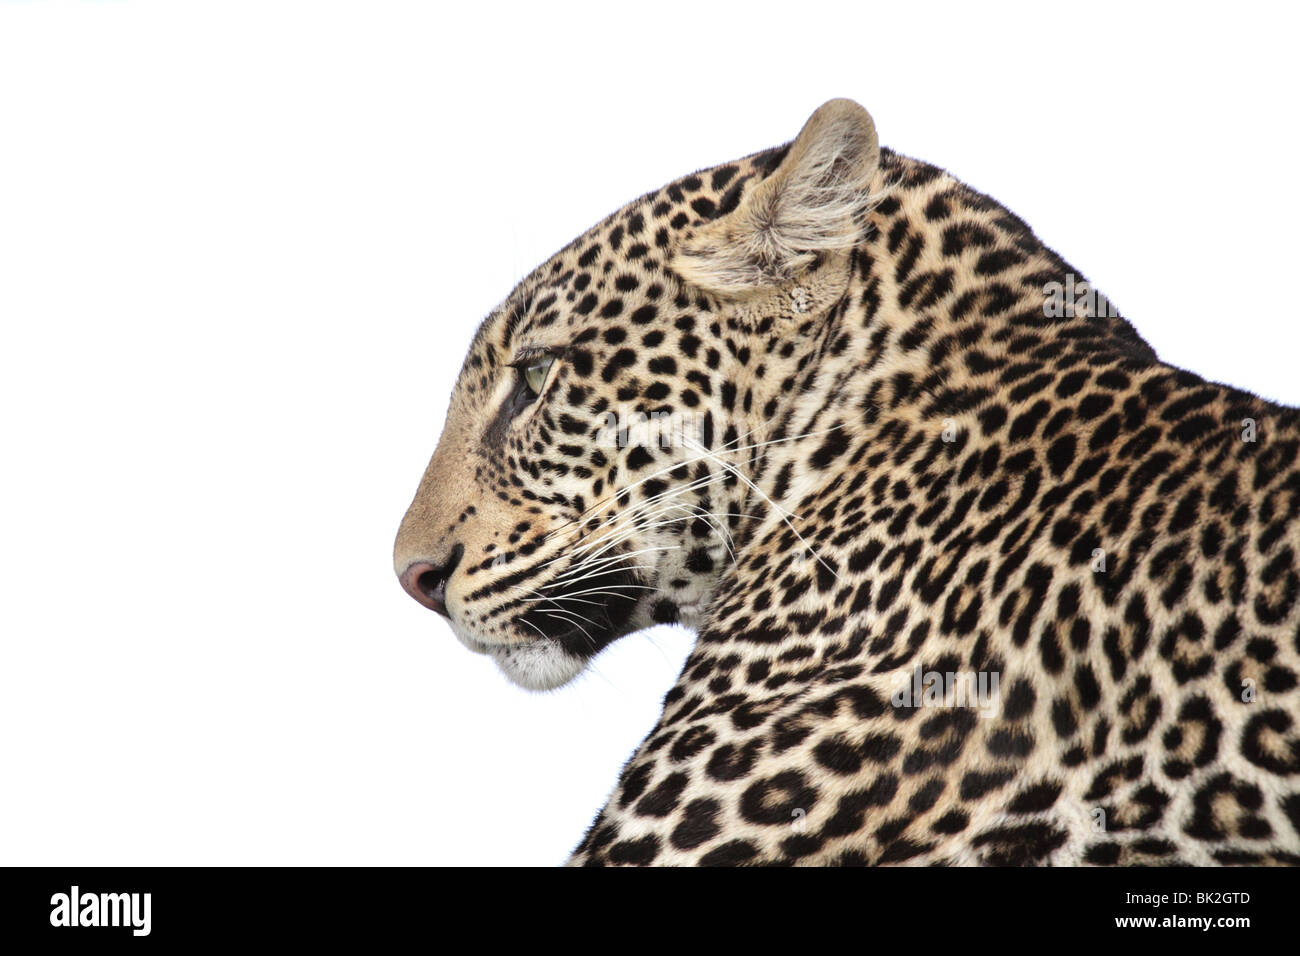 Profile of a Leopard's head - Stock Image